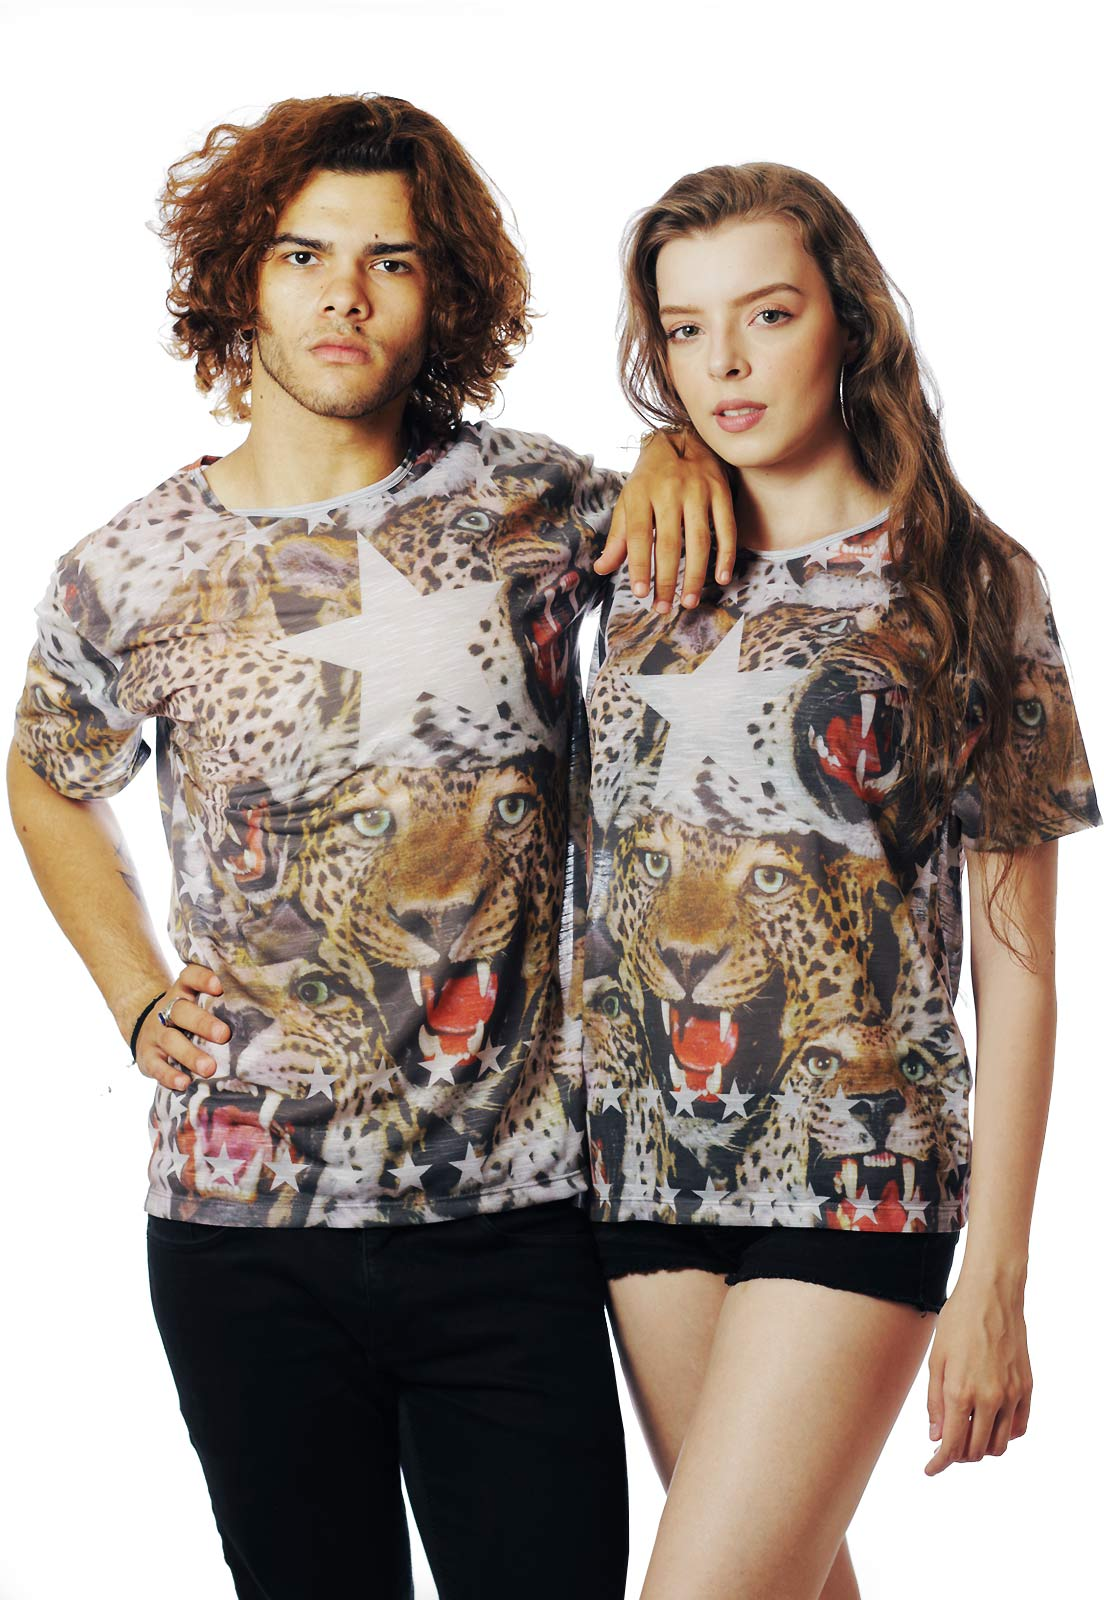 Camiseta Animal Print Oncinha Estampada Full Print Fa$hion Power Marrom BF